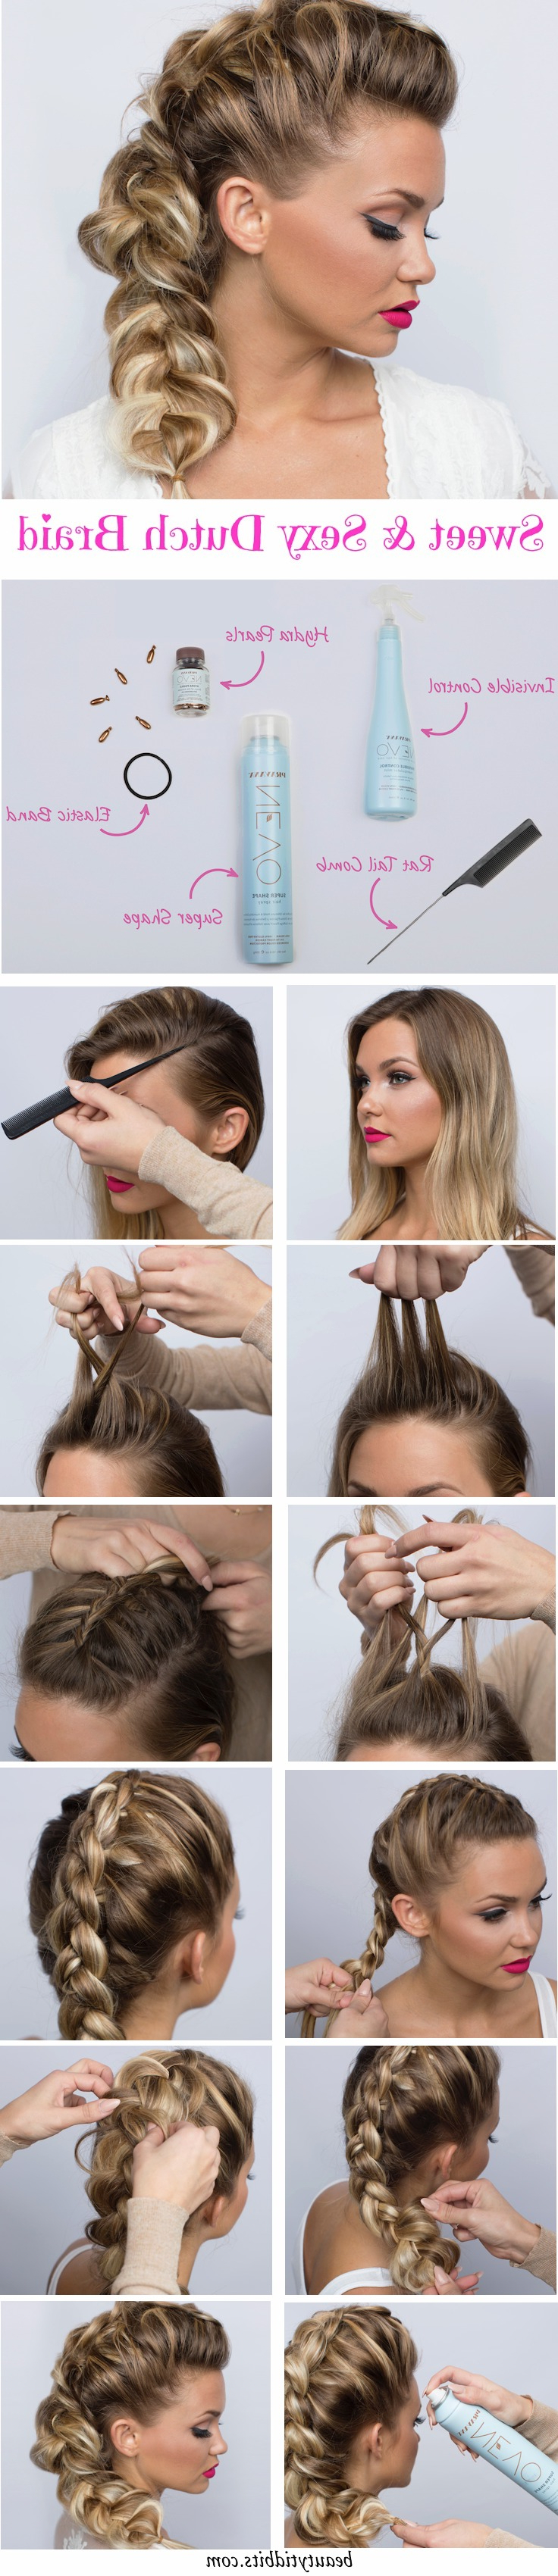 28 Trendy Faux Hawk Hairstyles For Women 2020 – Pretty Designs With Regard To Famous Classy Faux Mohawk Haircuts For Women (View 8 of 20)